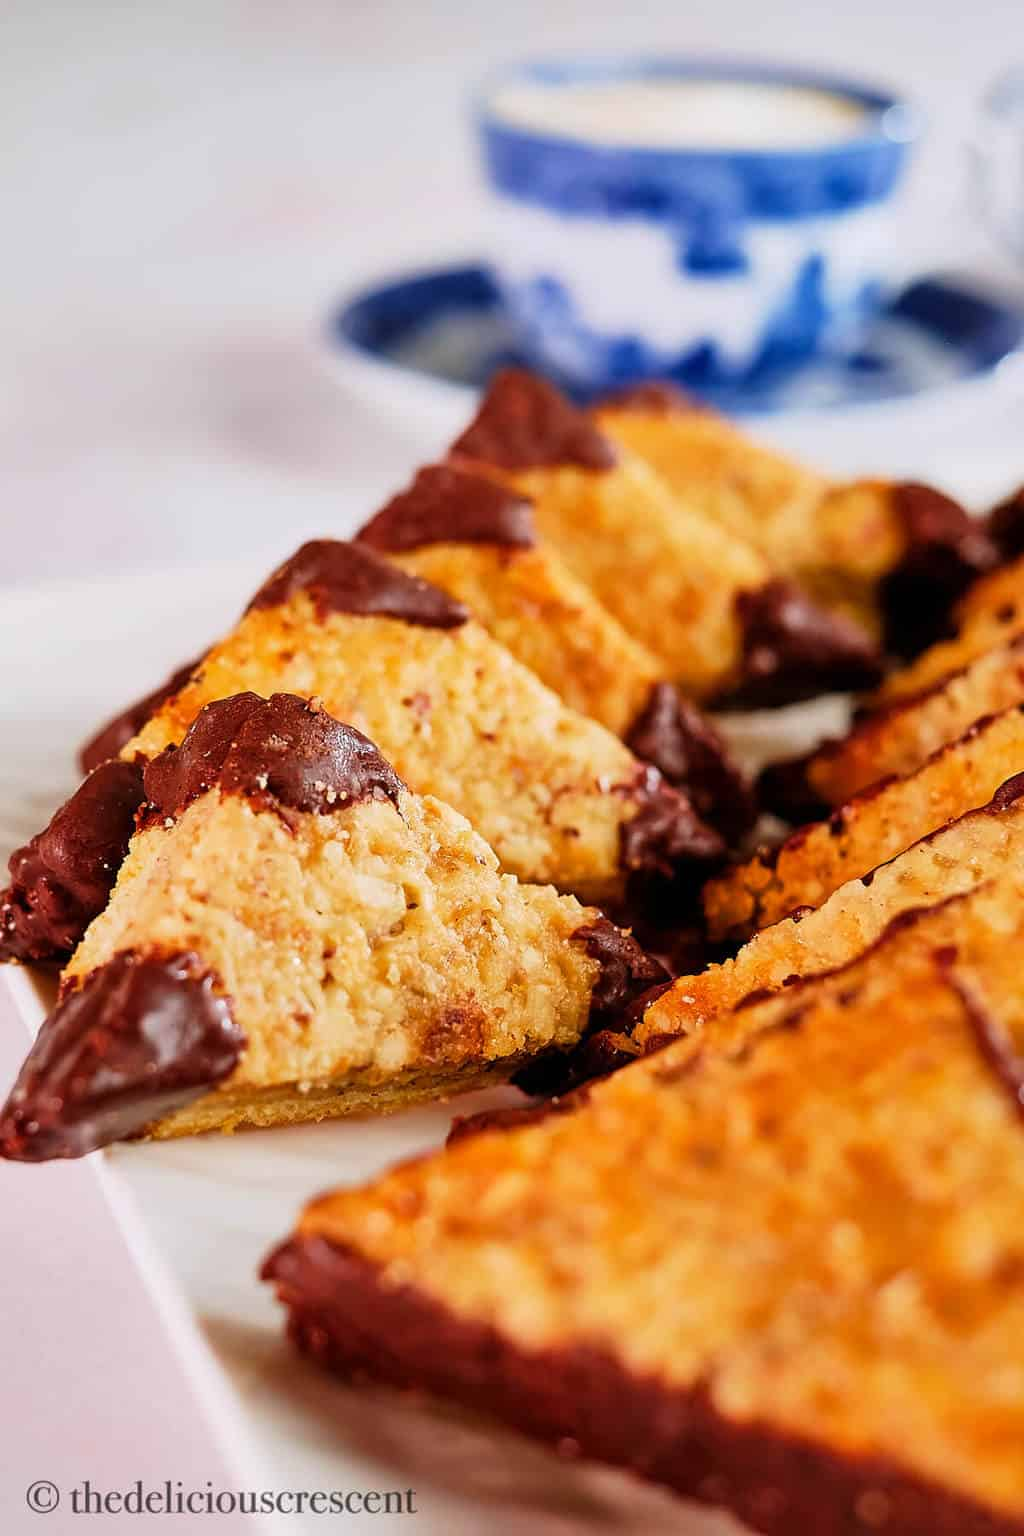 Hazelnut chocolate cookie bars stacked and arranged on a white plate.